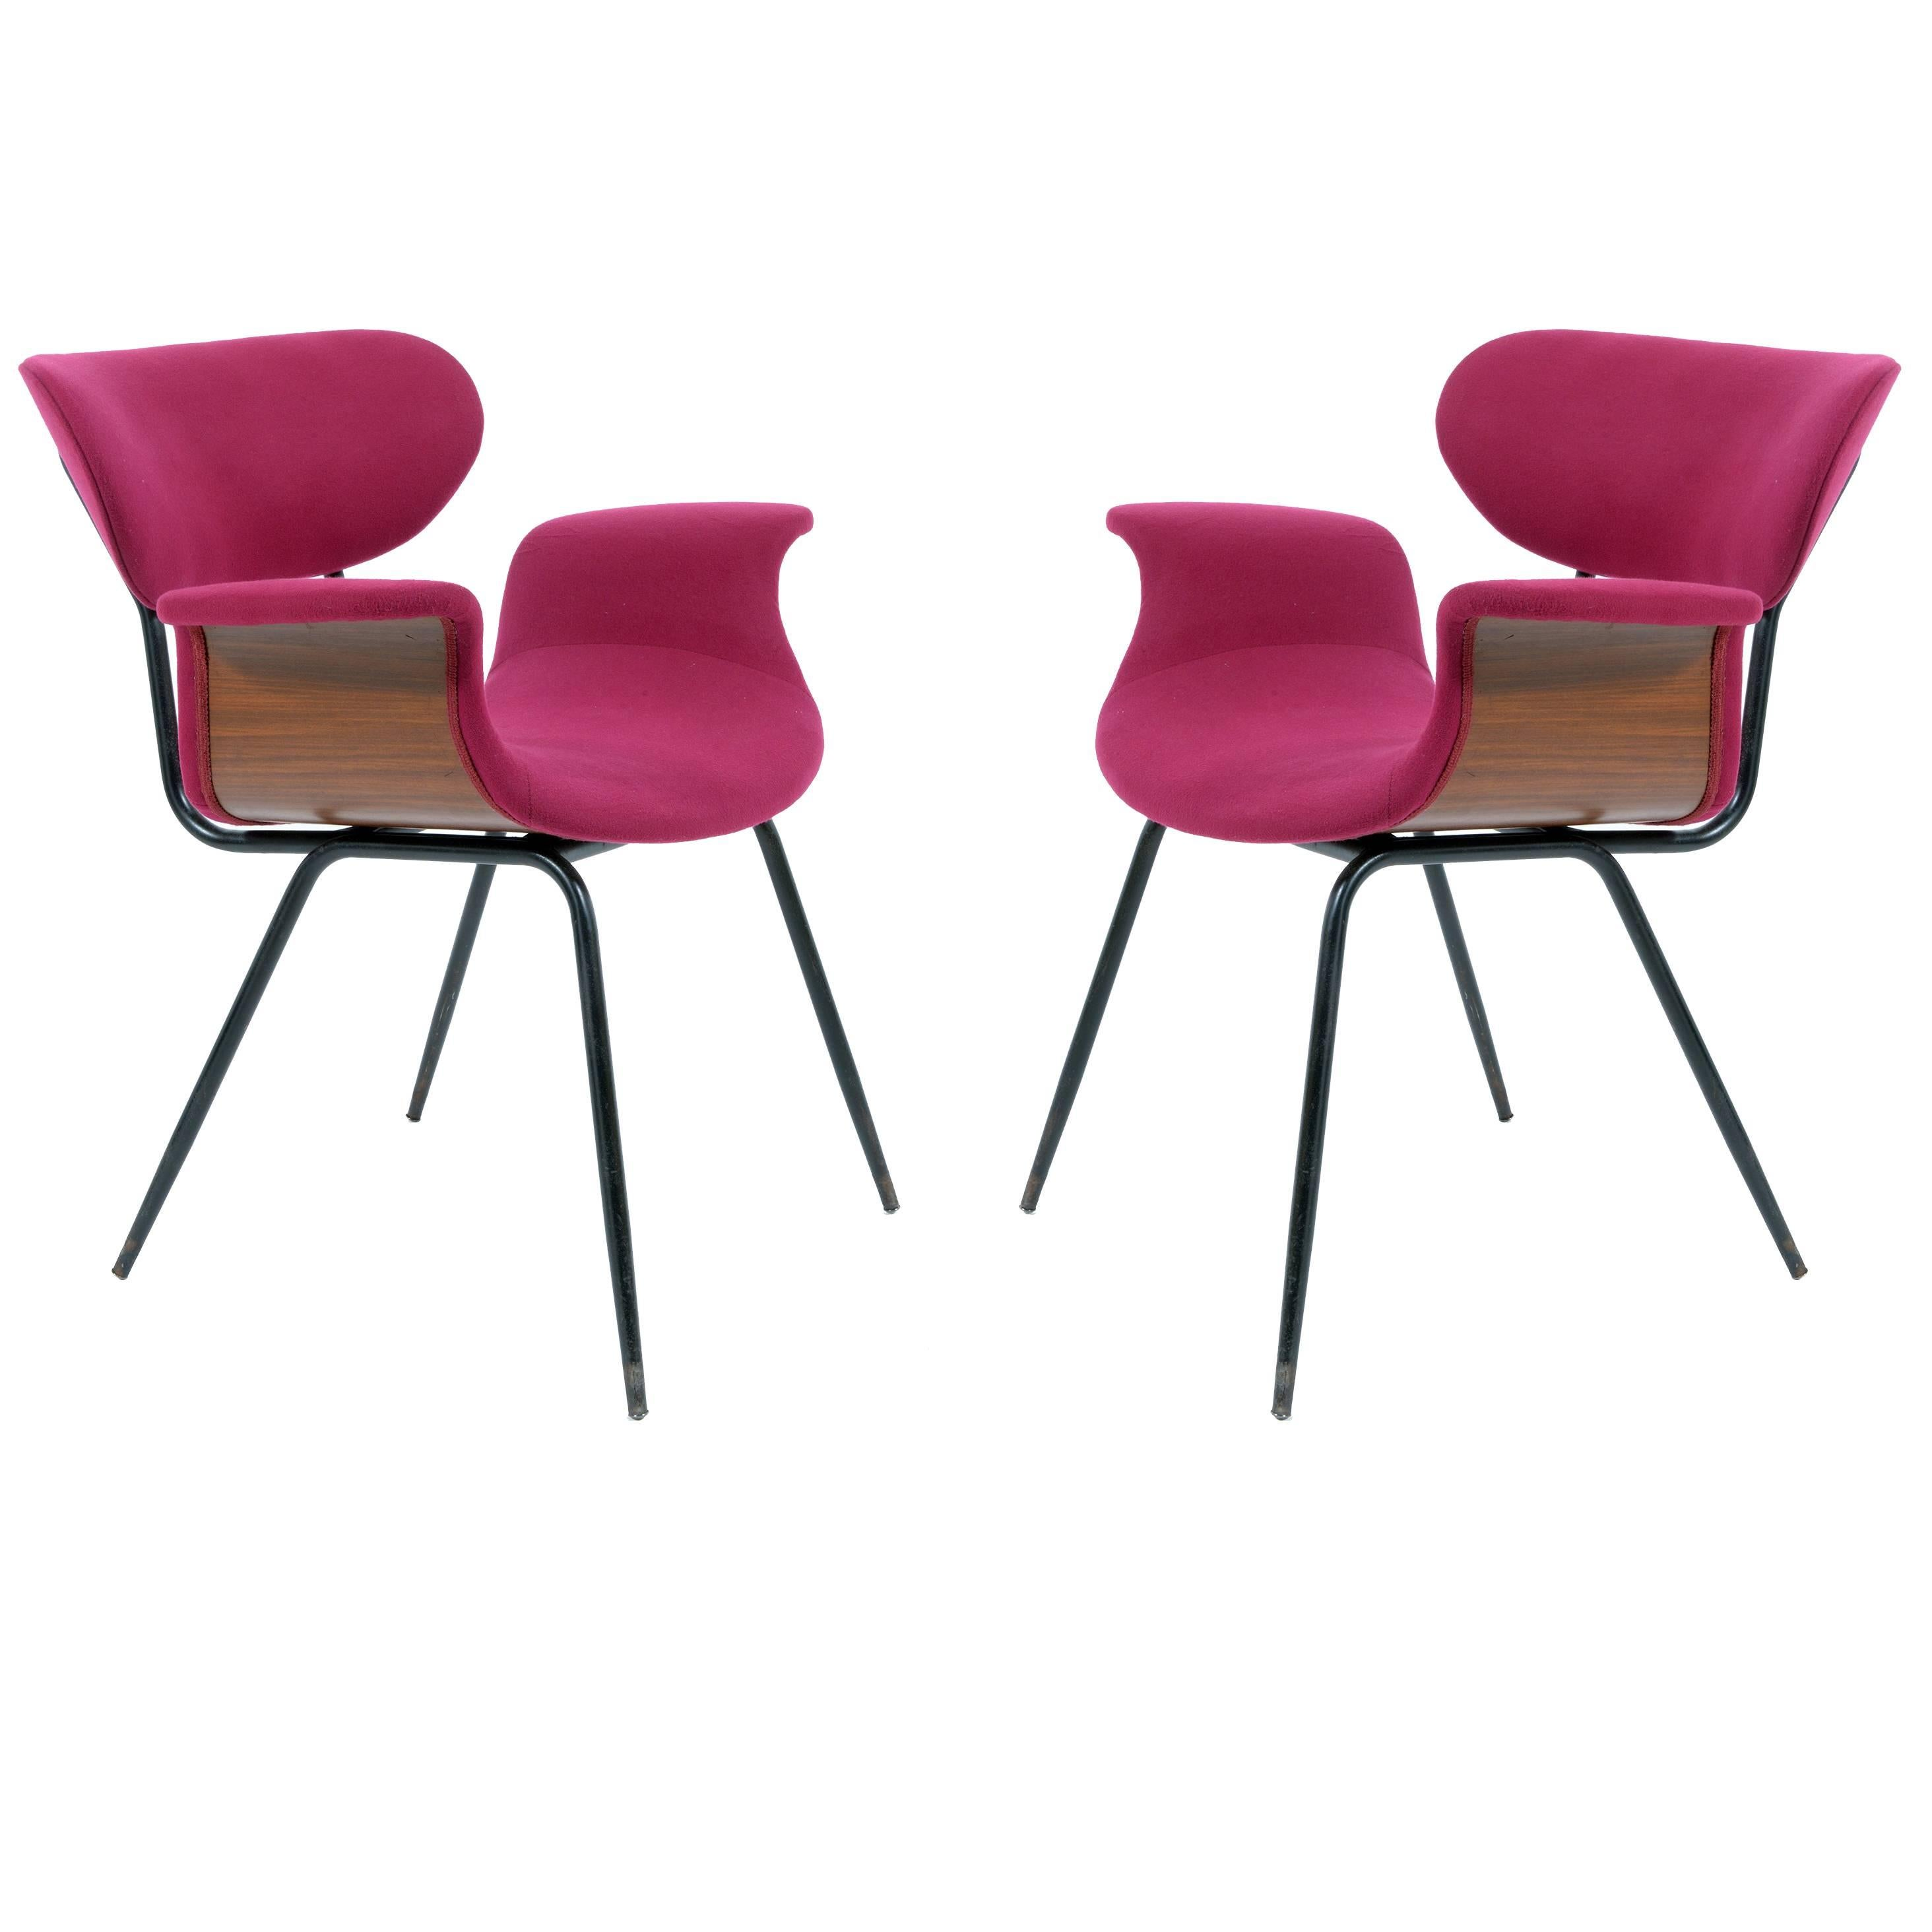 Pair of Mid-Century Italian Curved Plywood Armchairs